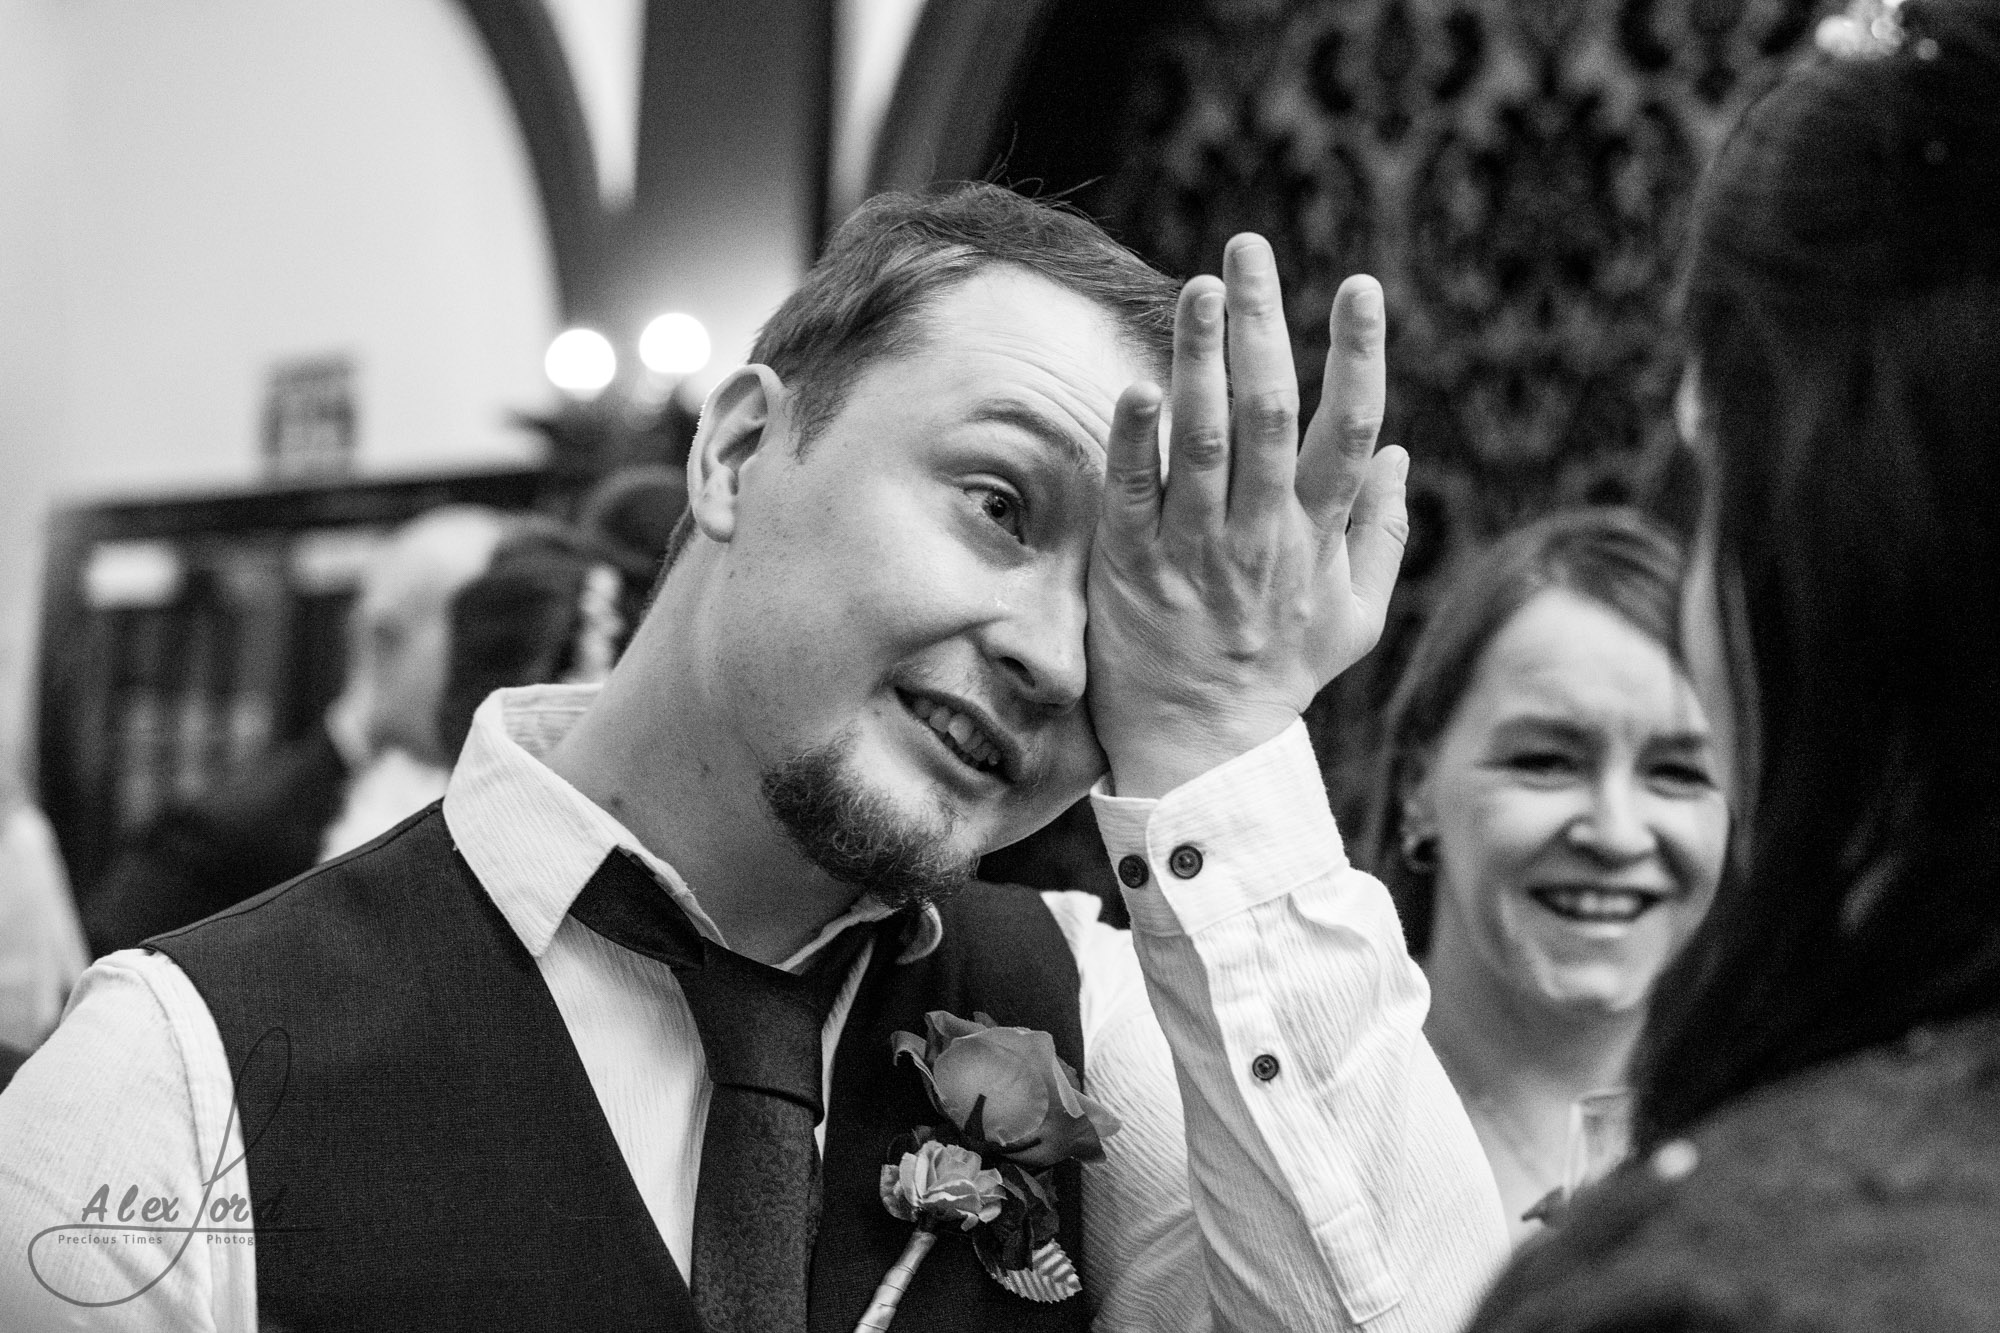 a male wedding guest puts his hand to his face to wipe away tears